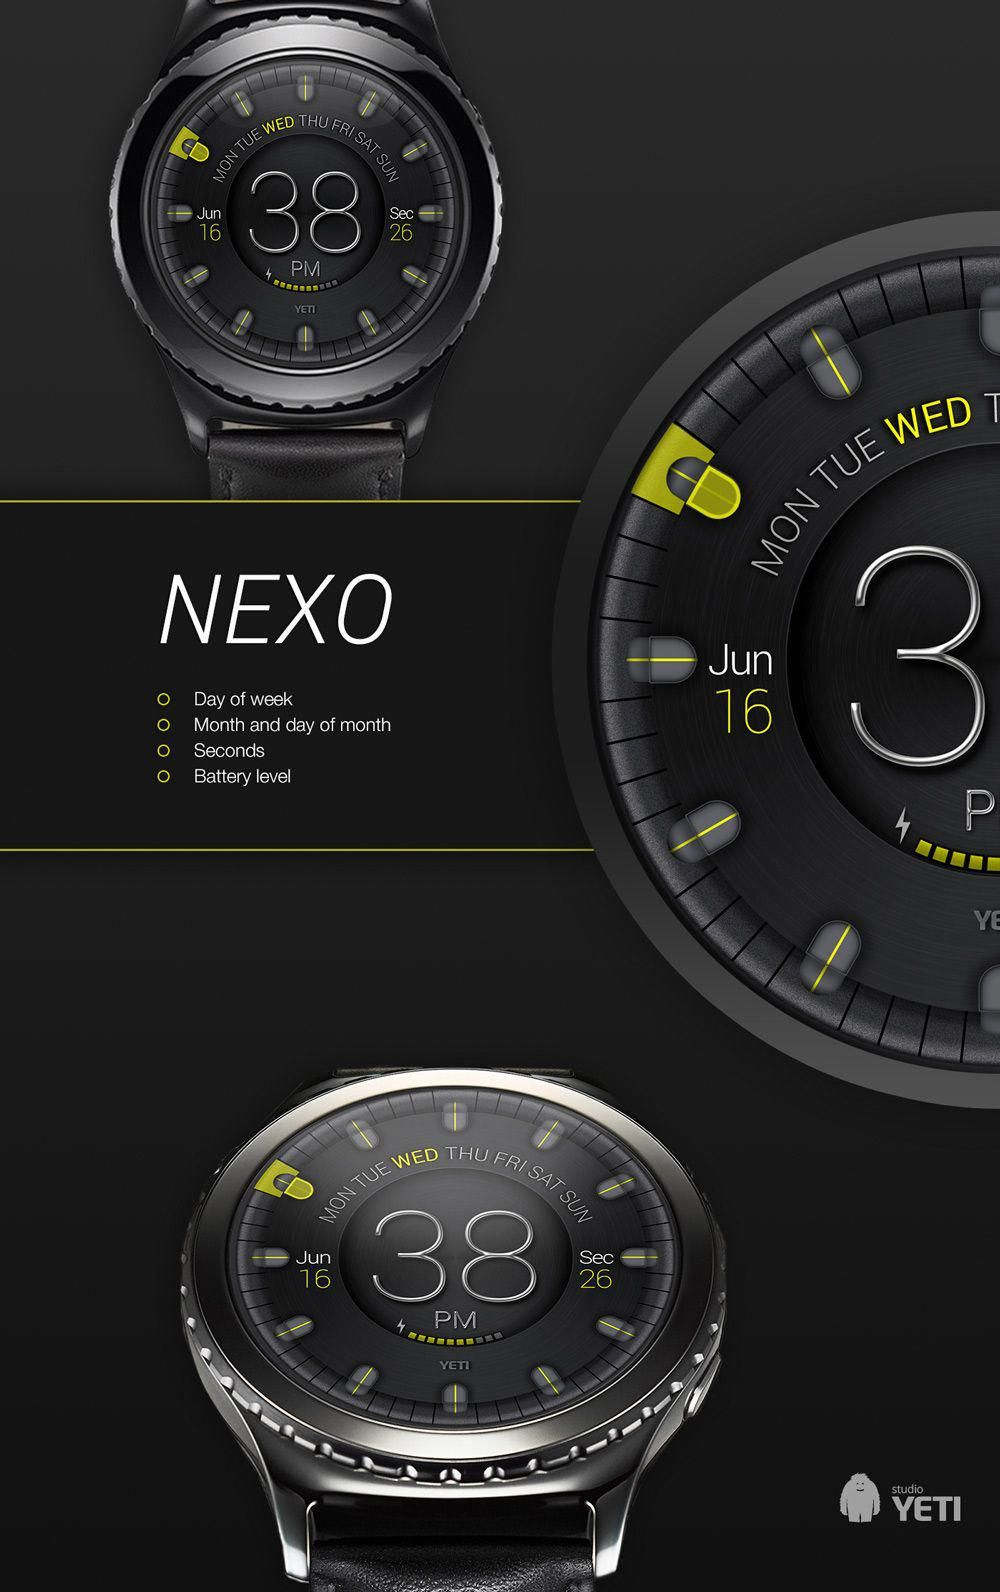 Watch Face for Tizen and Android Wear